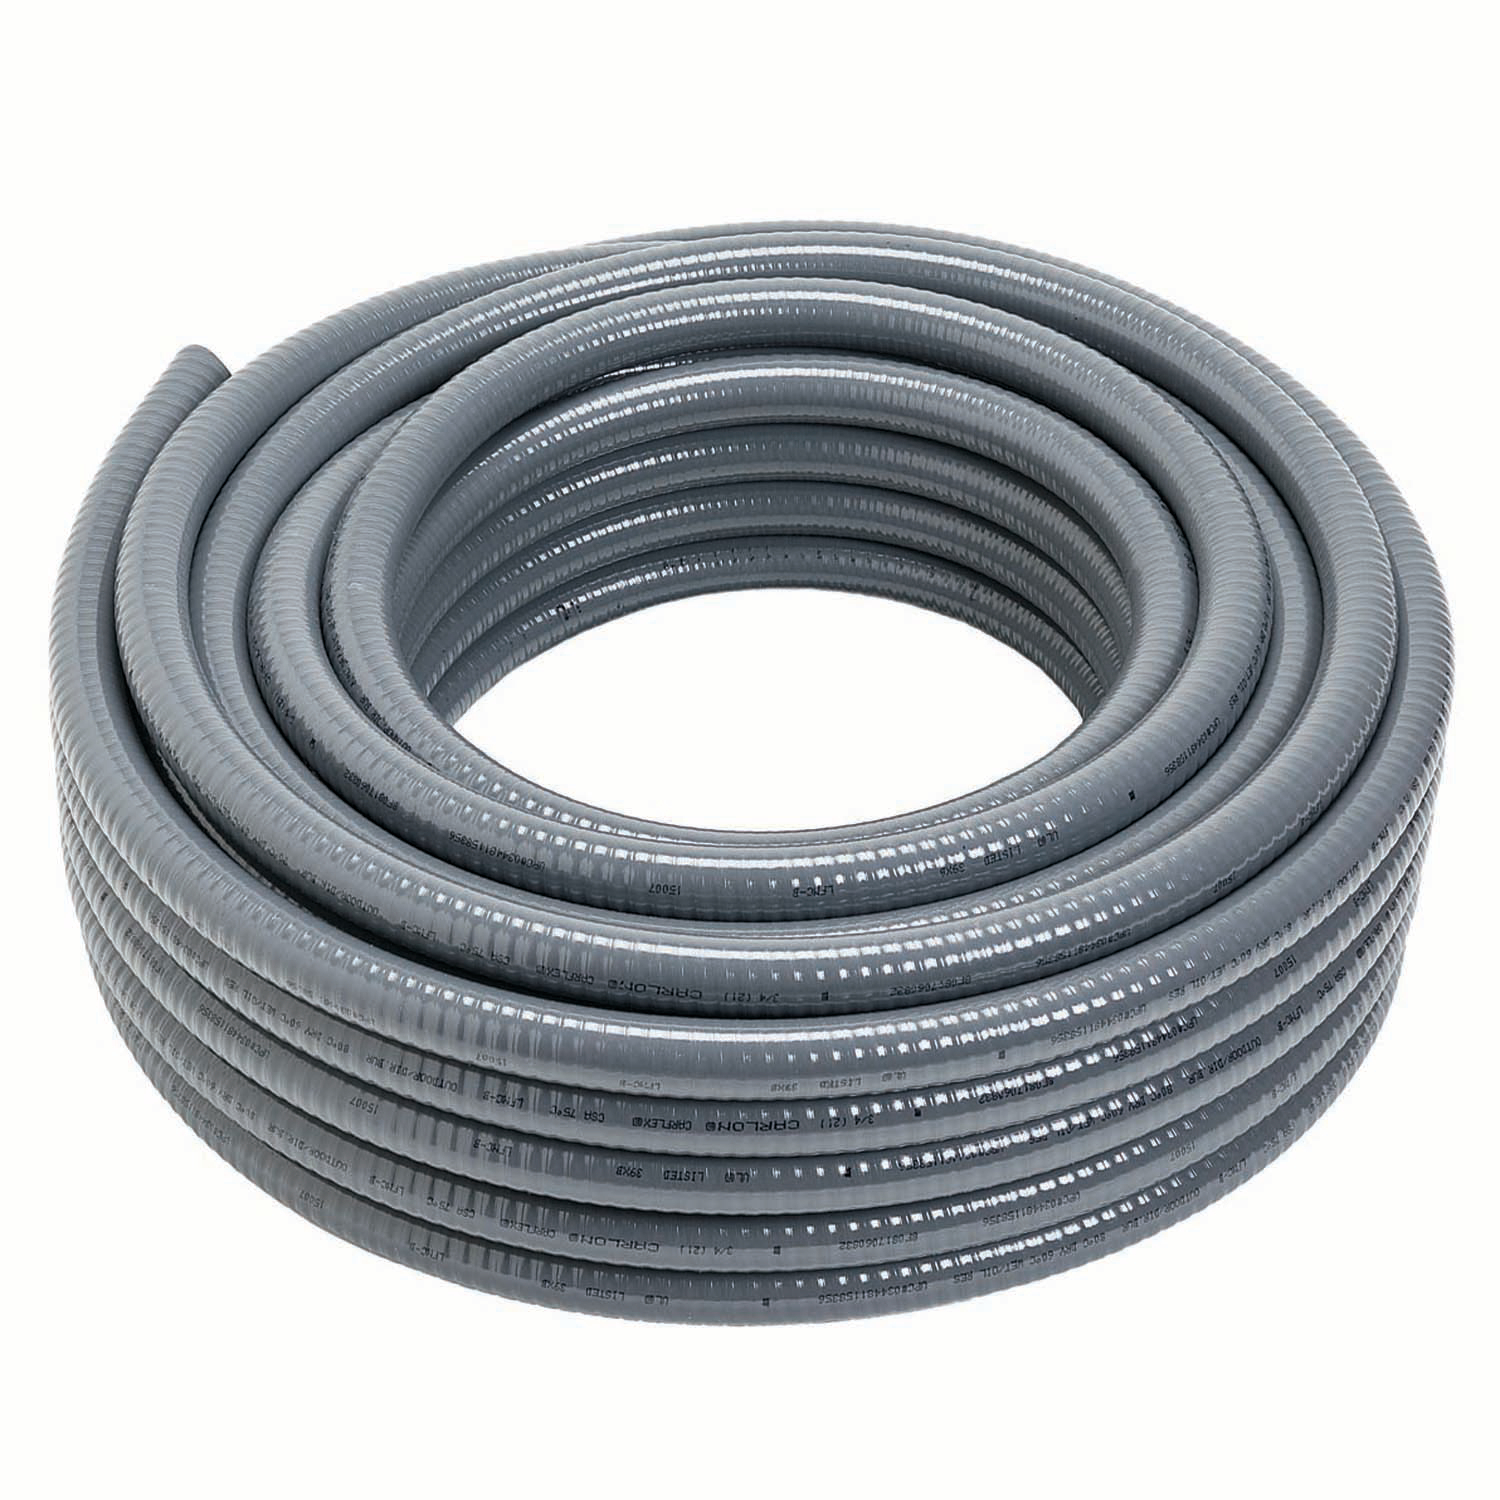 Carlon,15008-100,Carlon® 15008-100 LFNC-B Liquidtight Flexible Conduit, 1 in Trade, 1.046 in ID x 1.302 in OD, 100 ft L, PVC